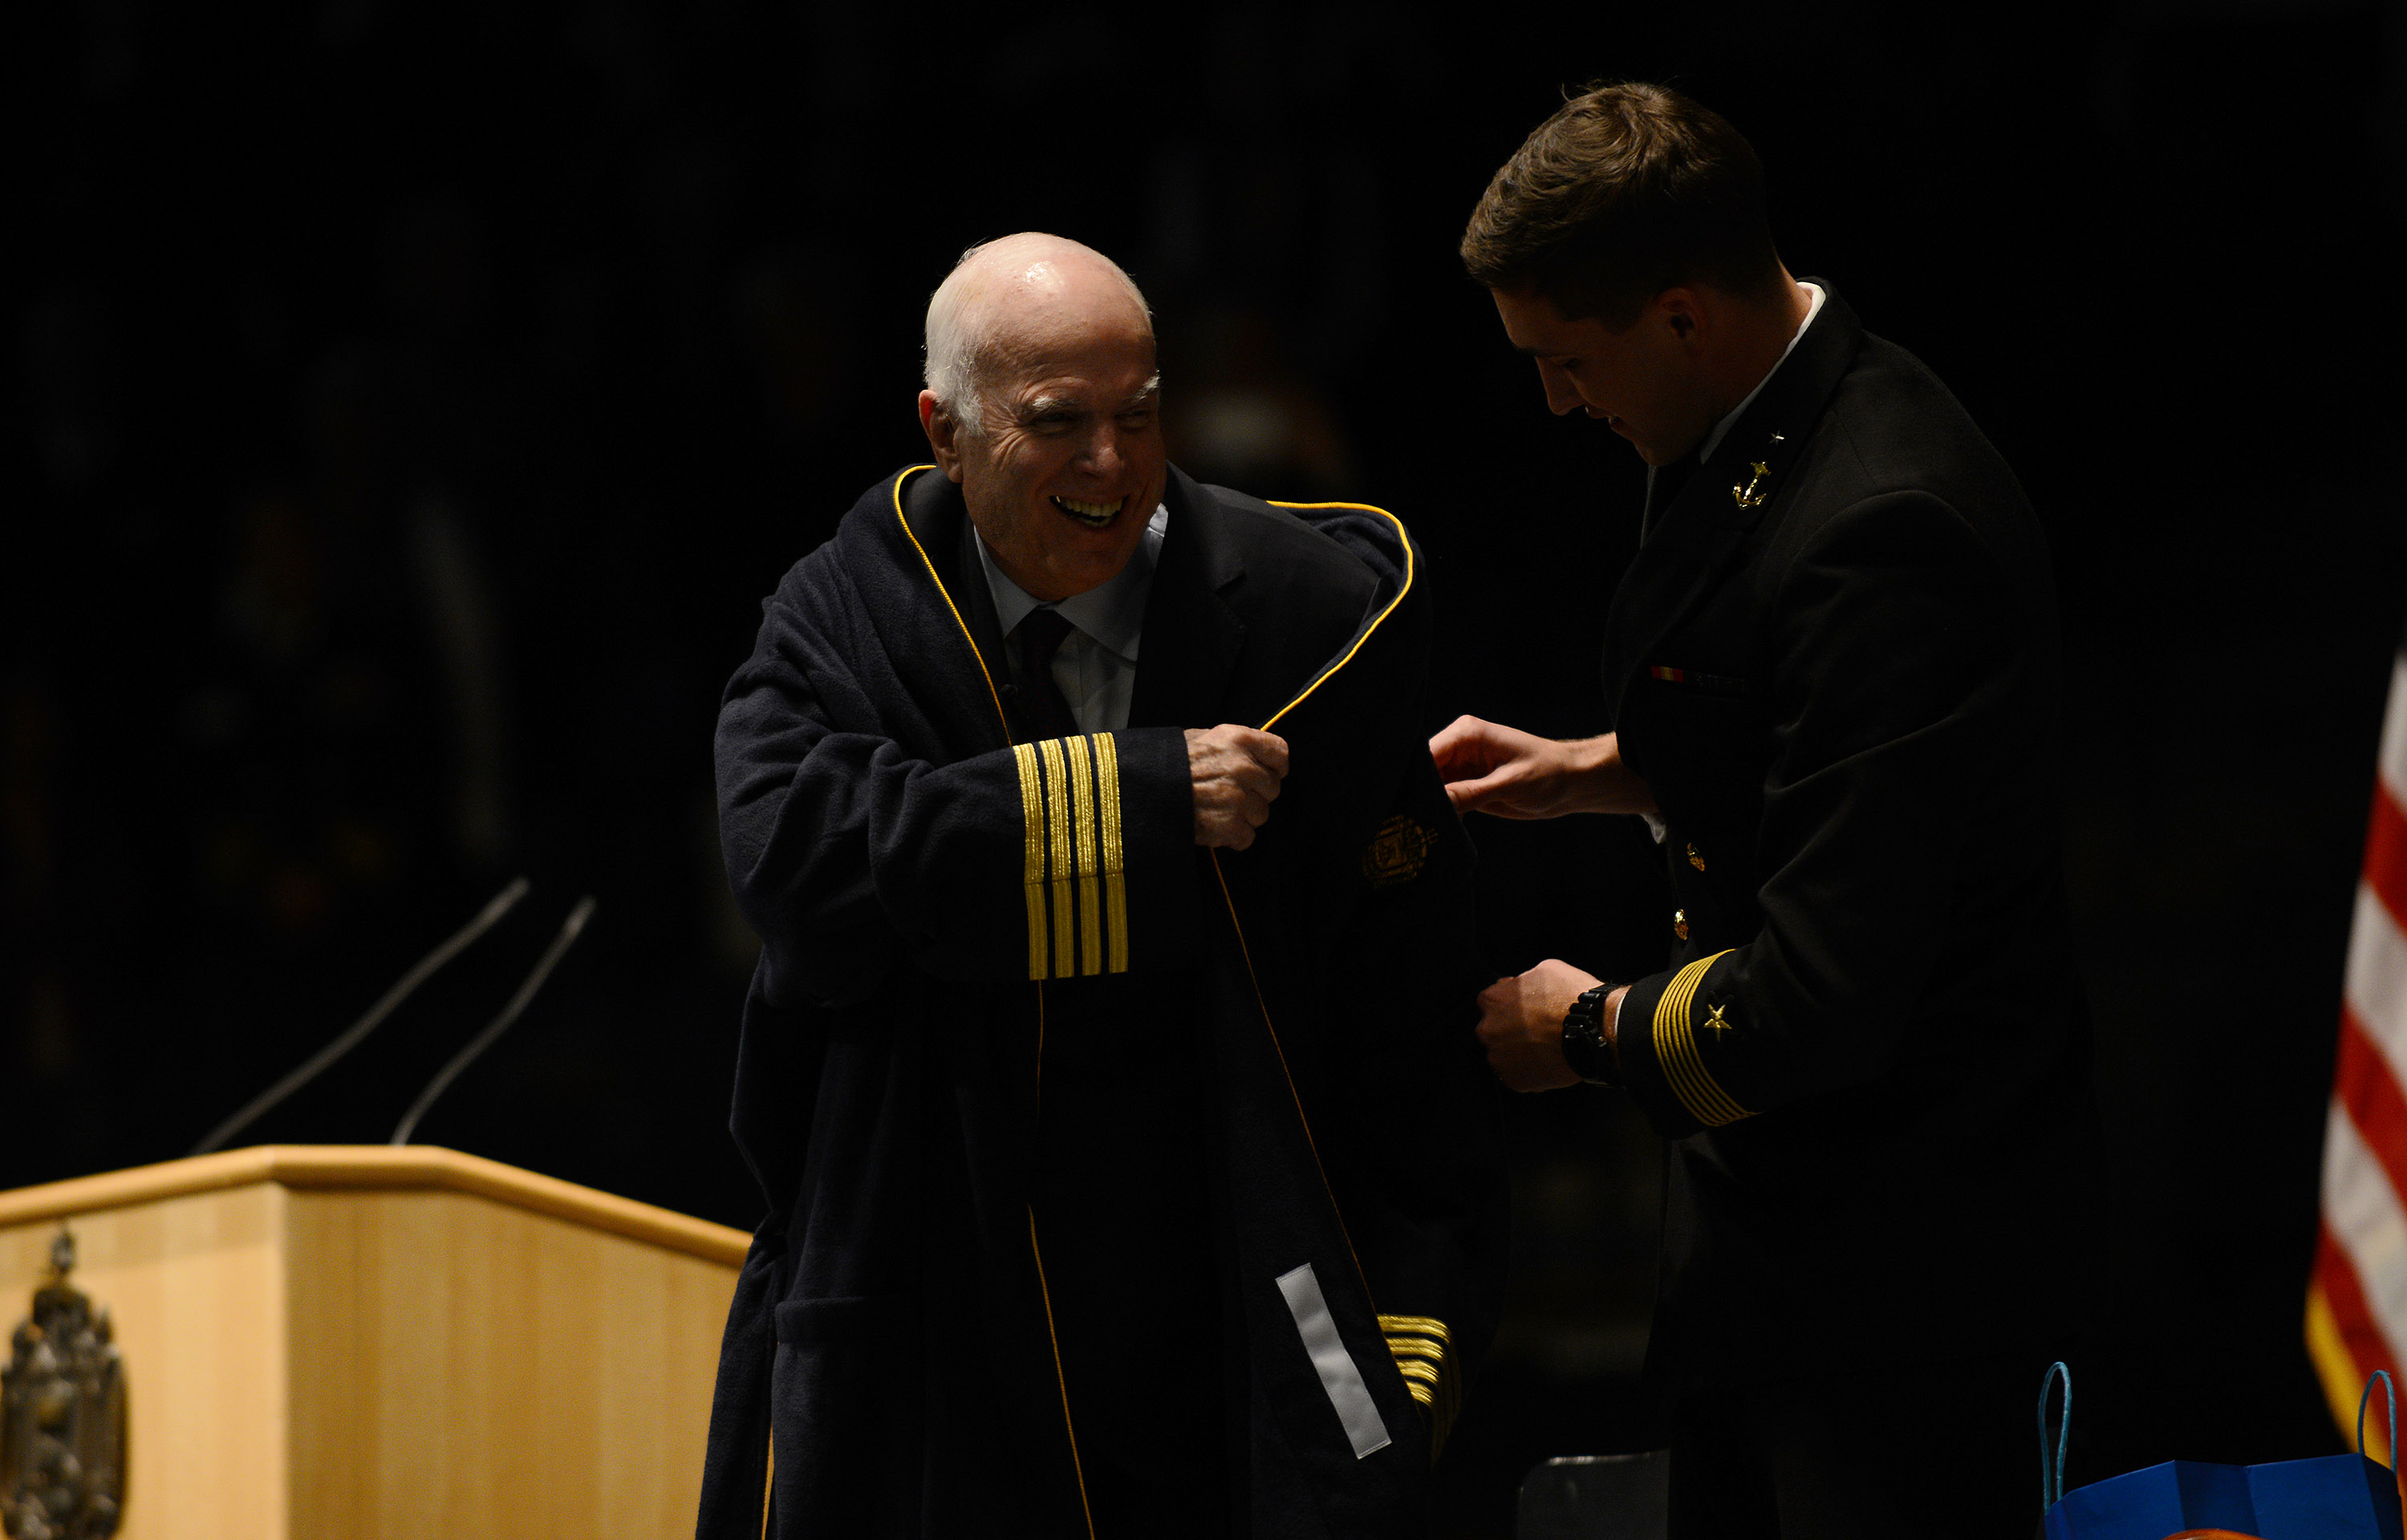 Sen. John McCain, R-Ariz., chairman of the Senate Armed Services Committee, laughs while trying to put on his gift, a Navy bathrobe, after addressing the Naval Academy on Oct. 30, 2017, in Annapolis, Md. He spoke about the importance of American leadership and service to one's country. (Astrid Riecken/Getty Images)